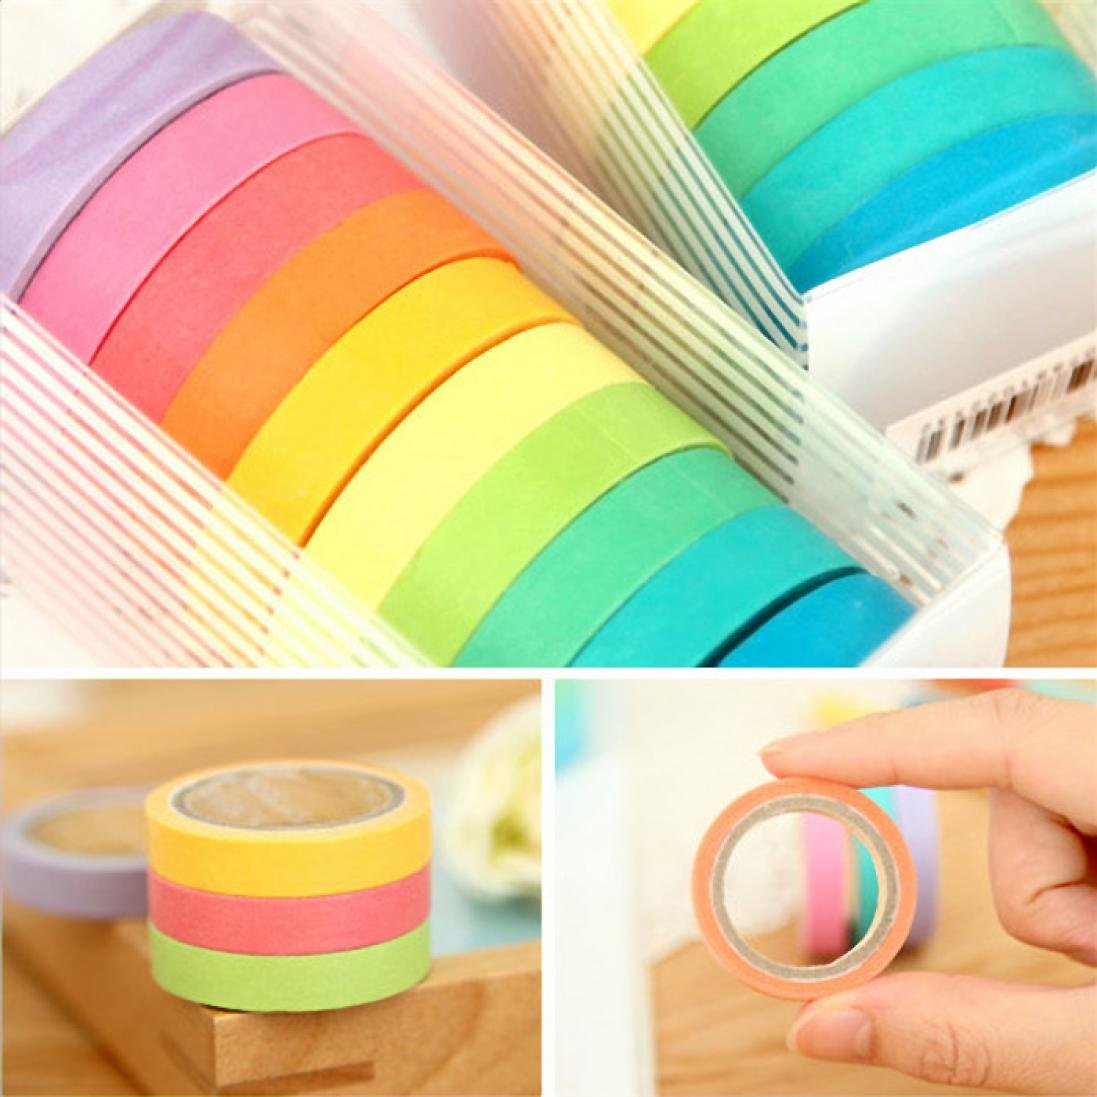 Voberry 10x Decorative Washi Rainbow Sticky Paper Masking Adhesive Tape Scrapbooking DIY by Voberry (Image #4)